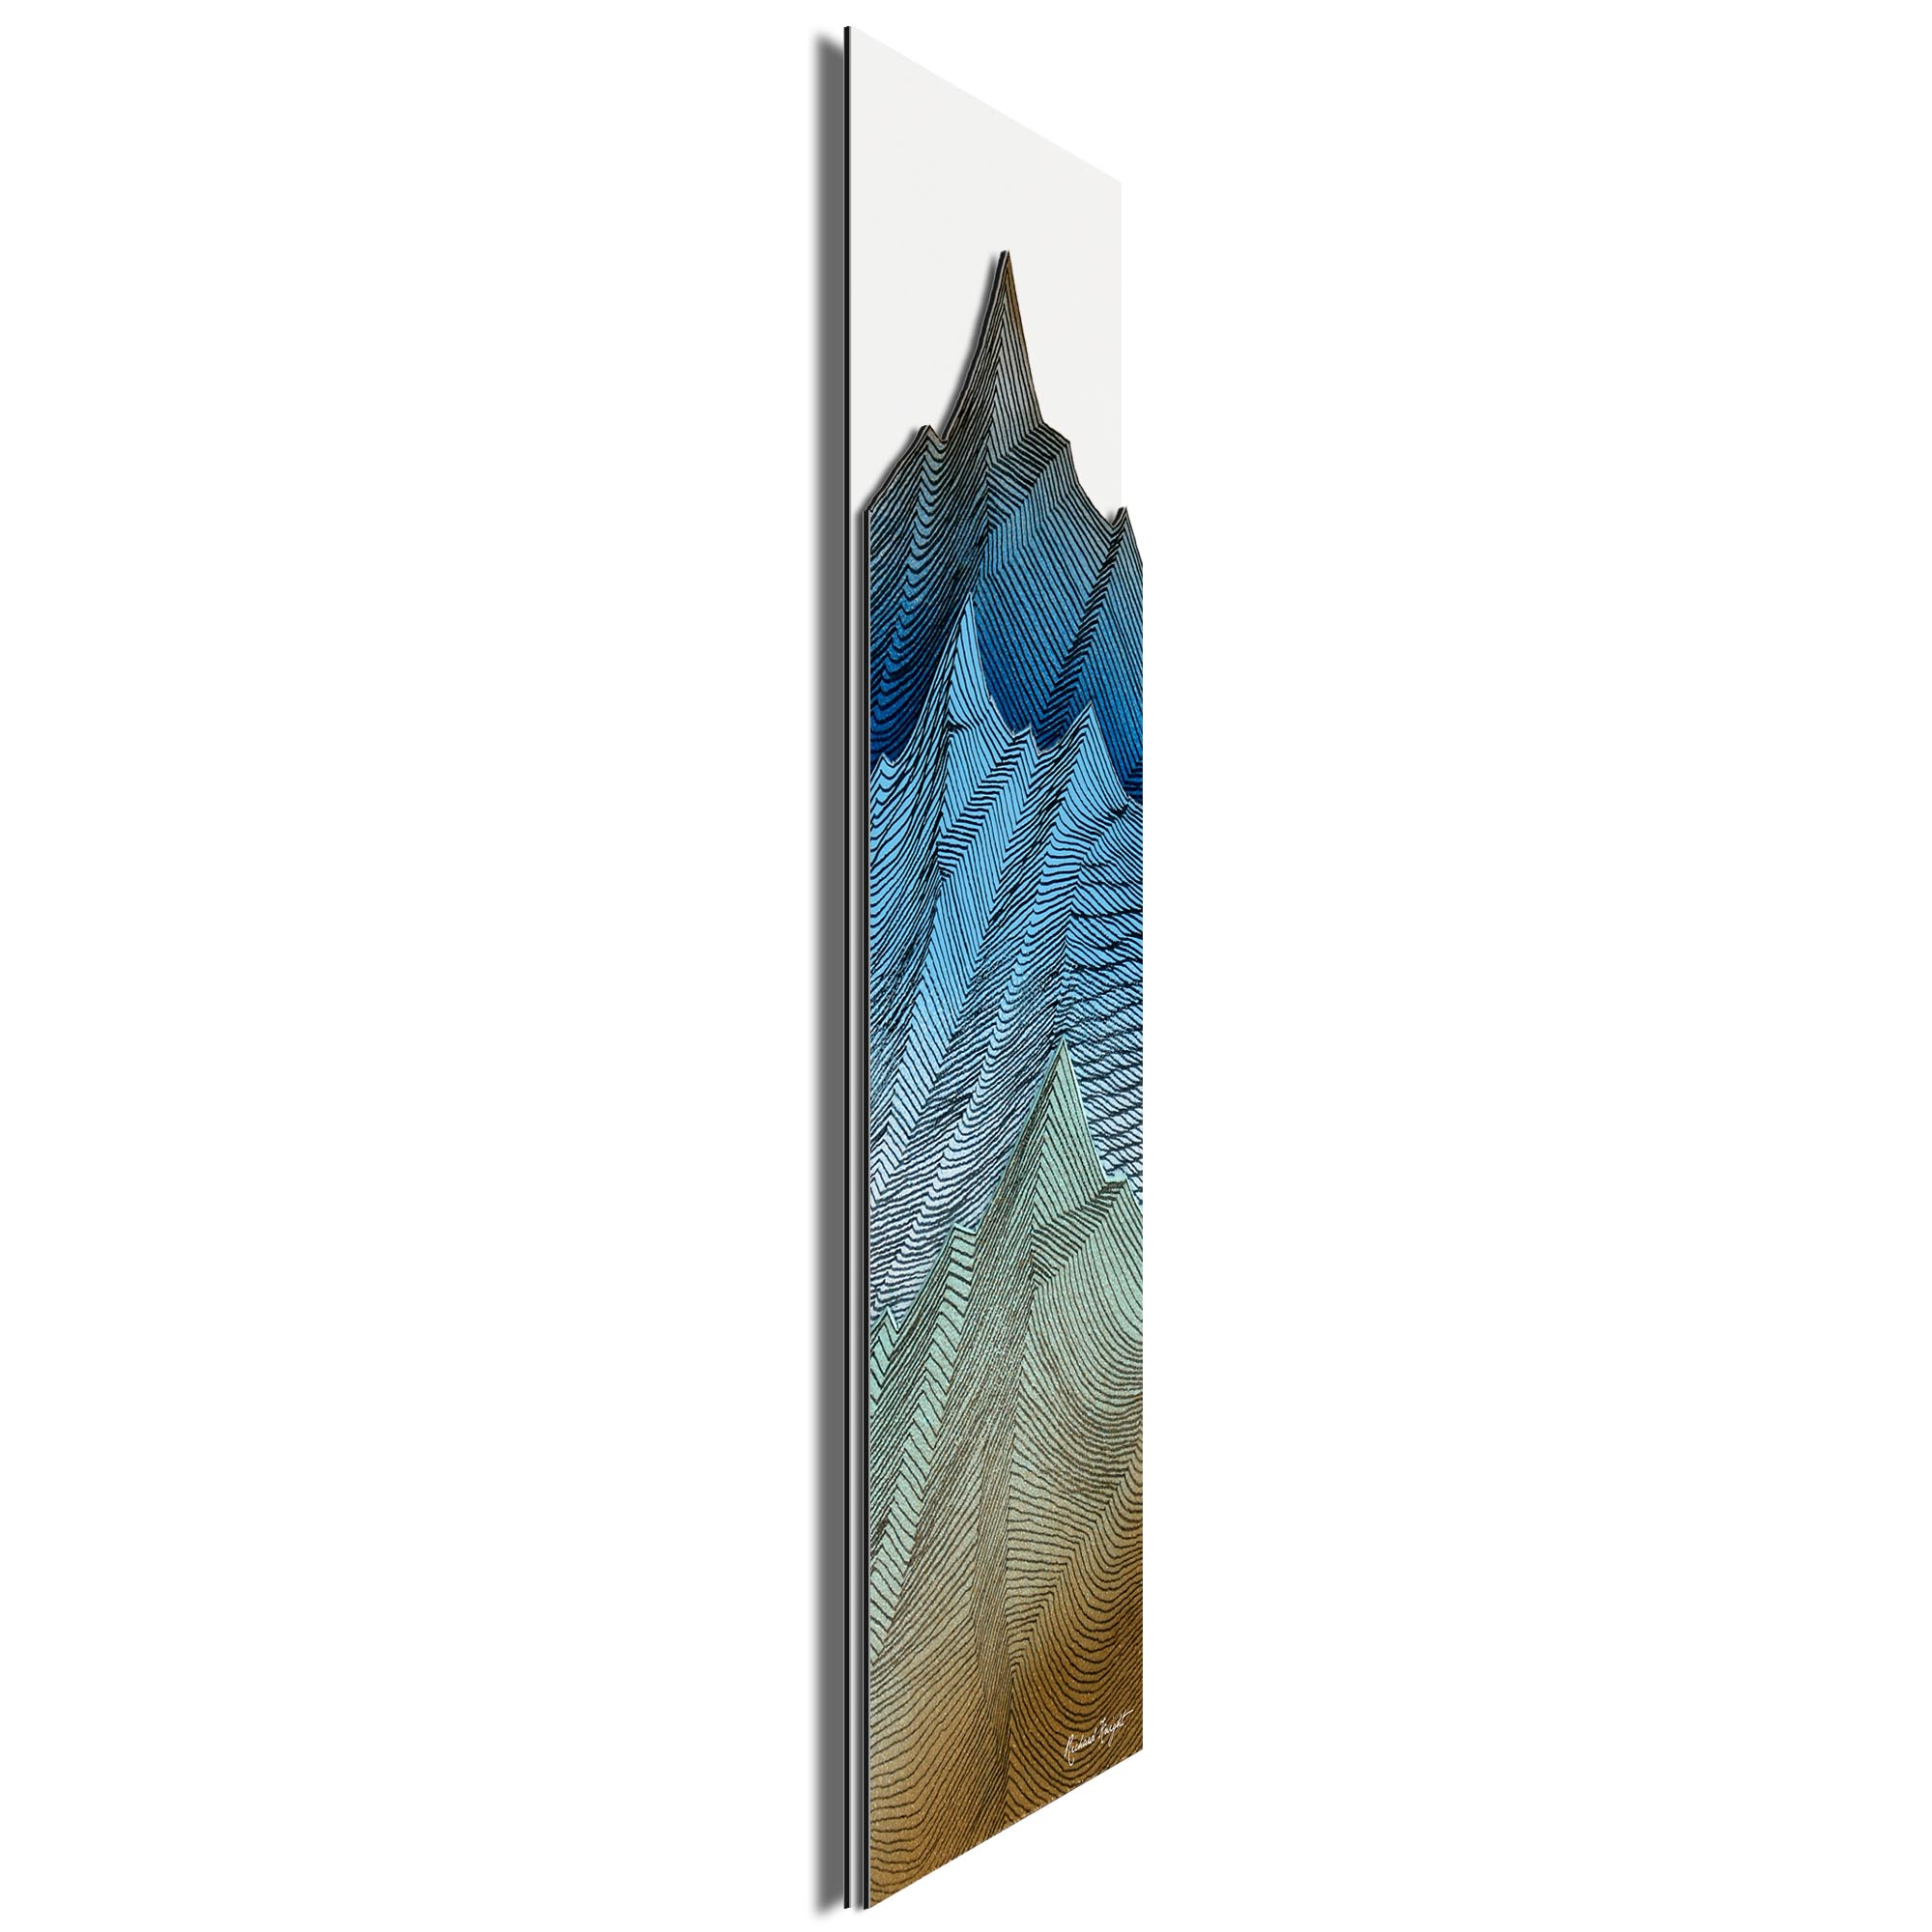 Organic Peaks by Richard Knight - Ltd. Ed. Minimalist Abstract Landscape Art - Image 2